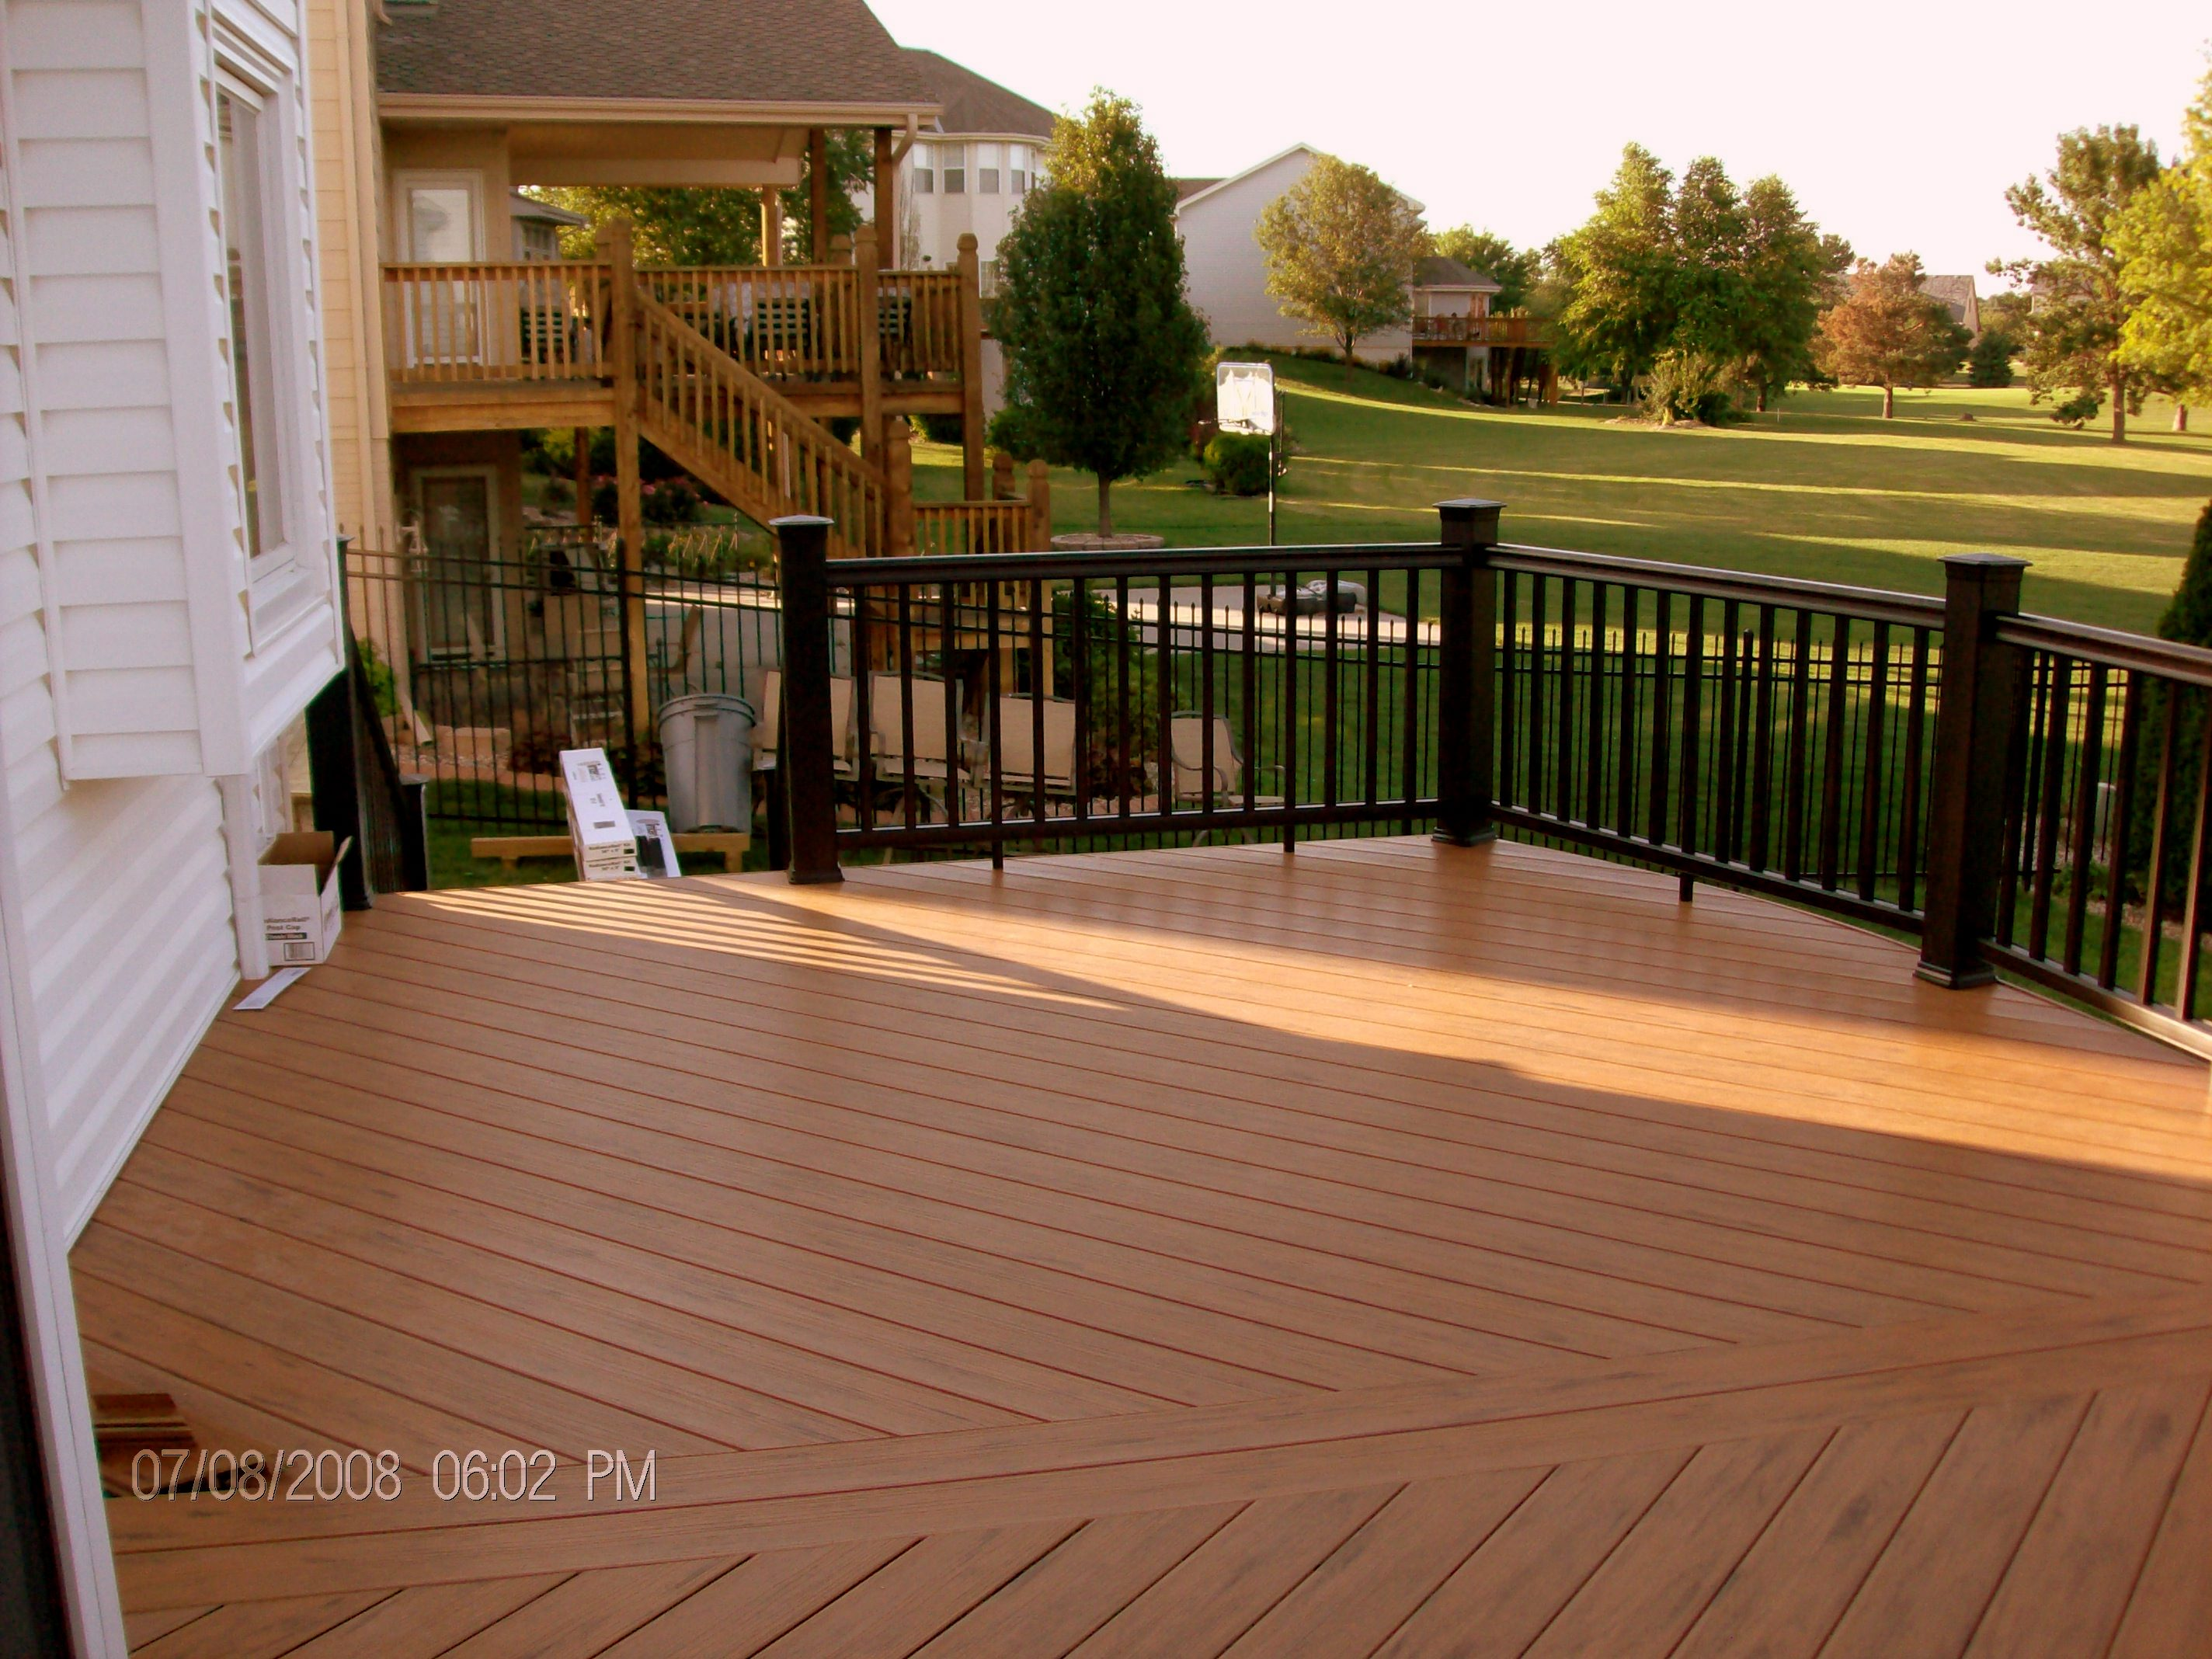 TimberTech Floorizon Deck in Tropical Teak with RadianceRail in Classic Black